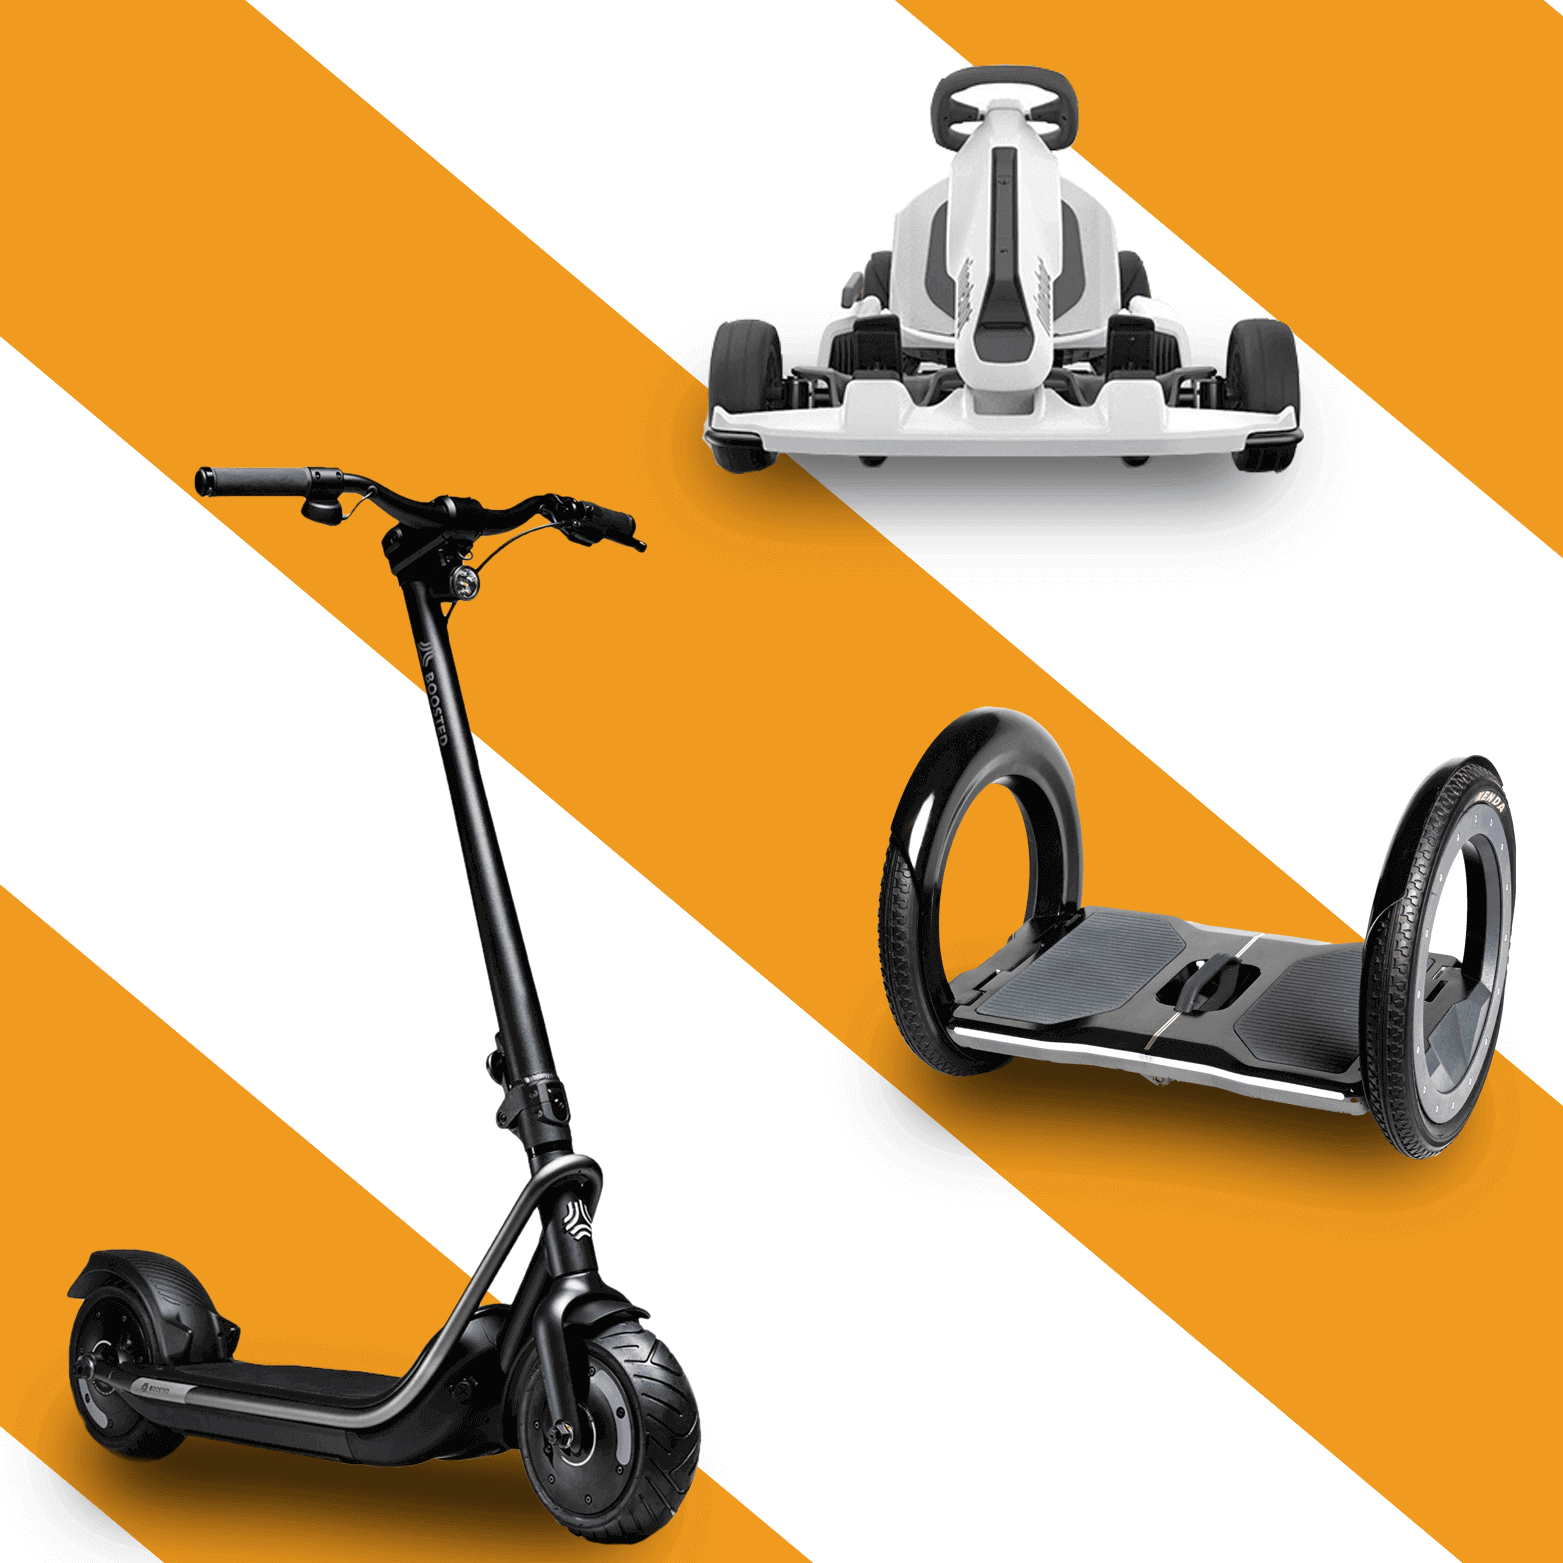 WHAT WE GET ASKED THE MOST ABOUT ELECTRIC SCOOTERS?